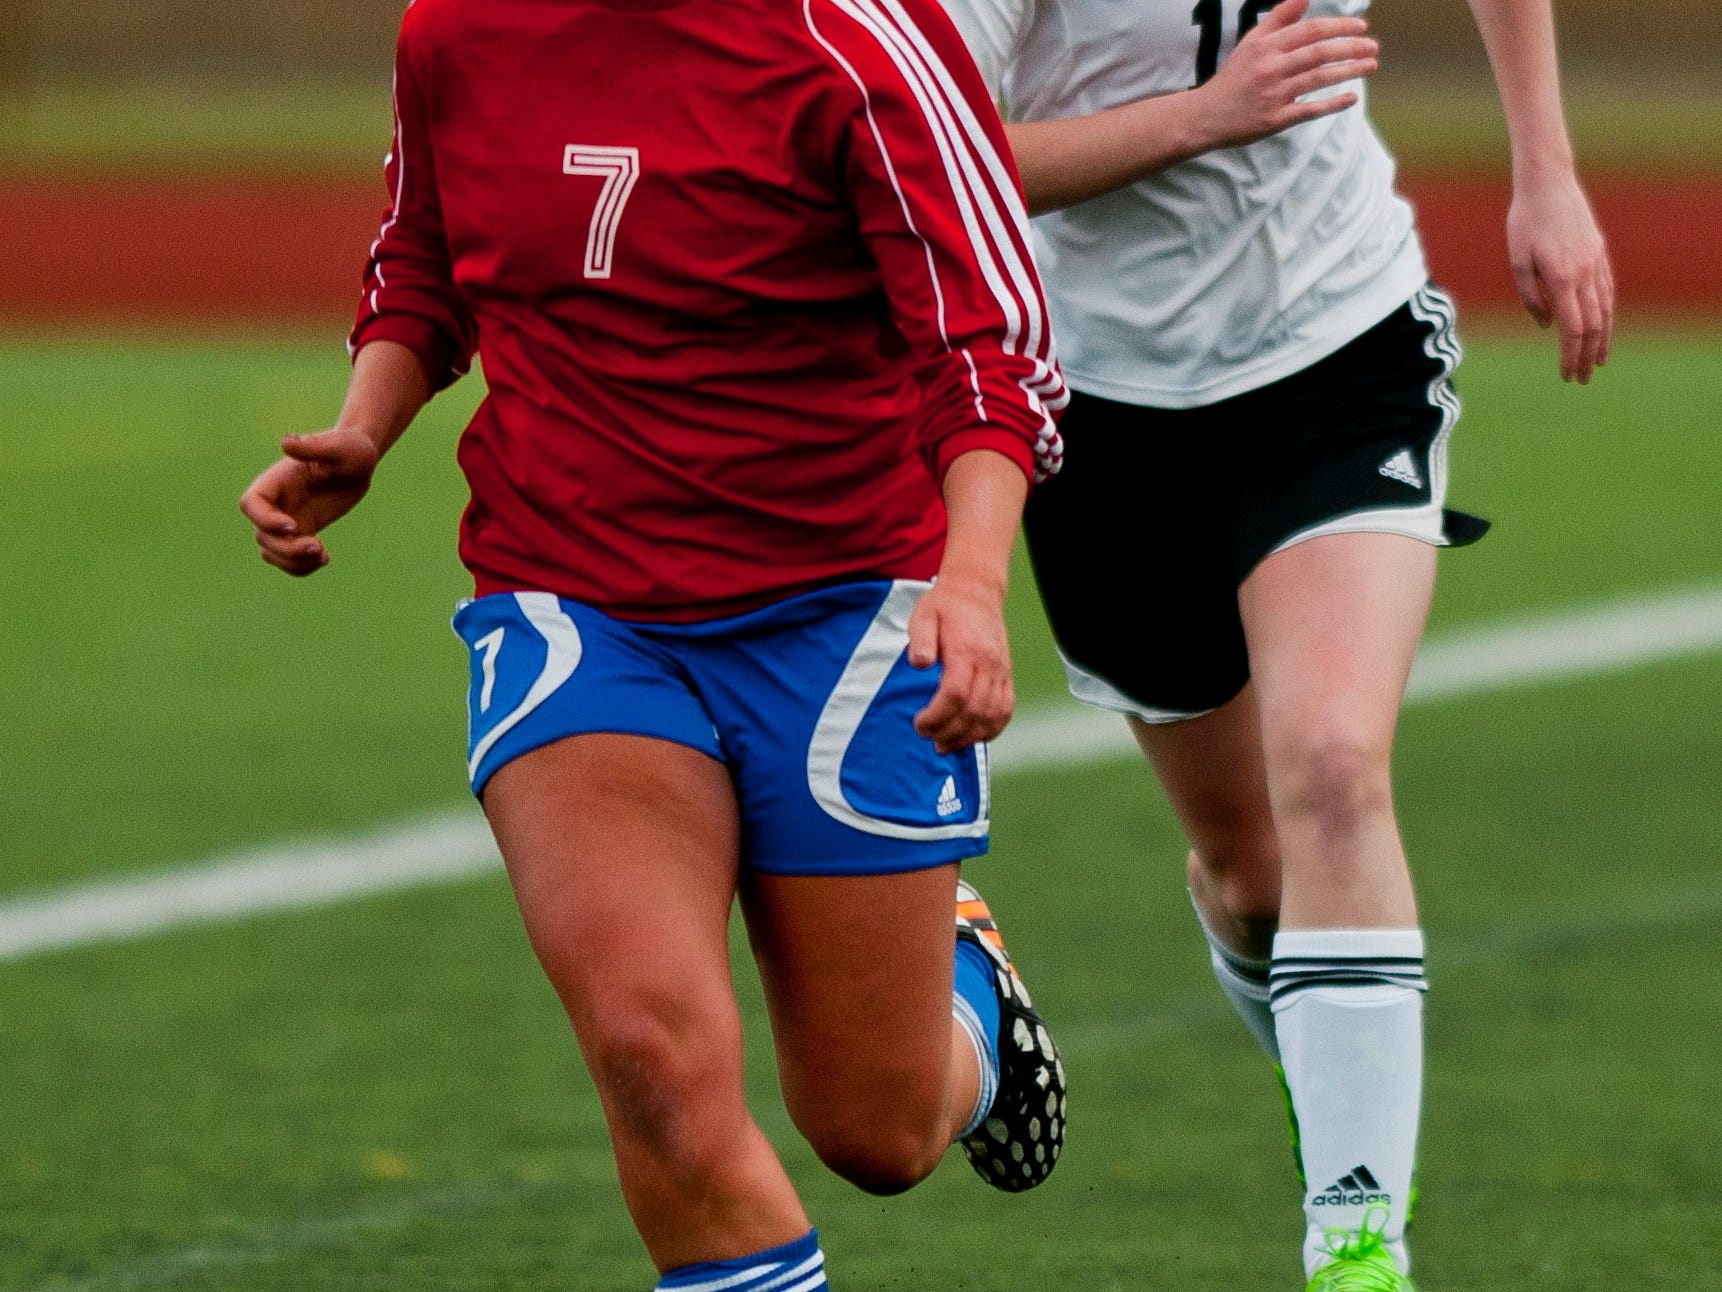 St. Clair's Laura Bluhm drives the ball down field in front of Marine City's Sydnee Frank during a soccer game Wednesday at East China Stadium.